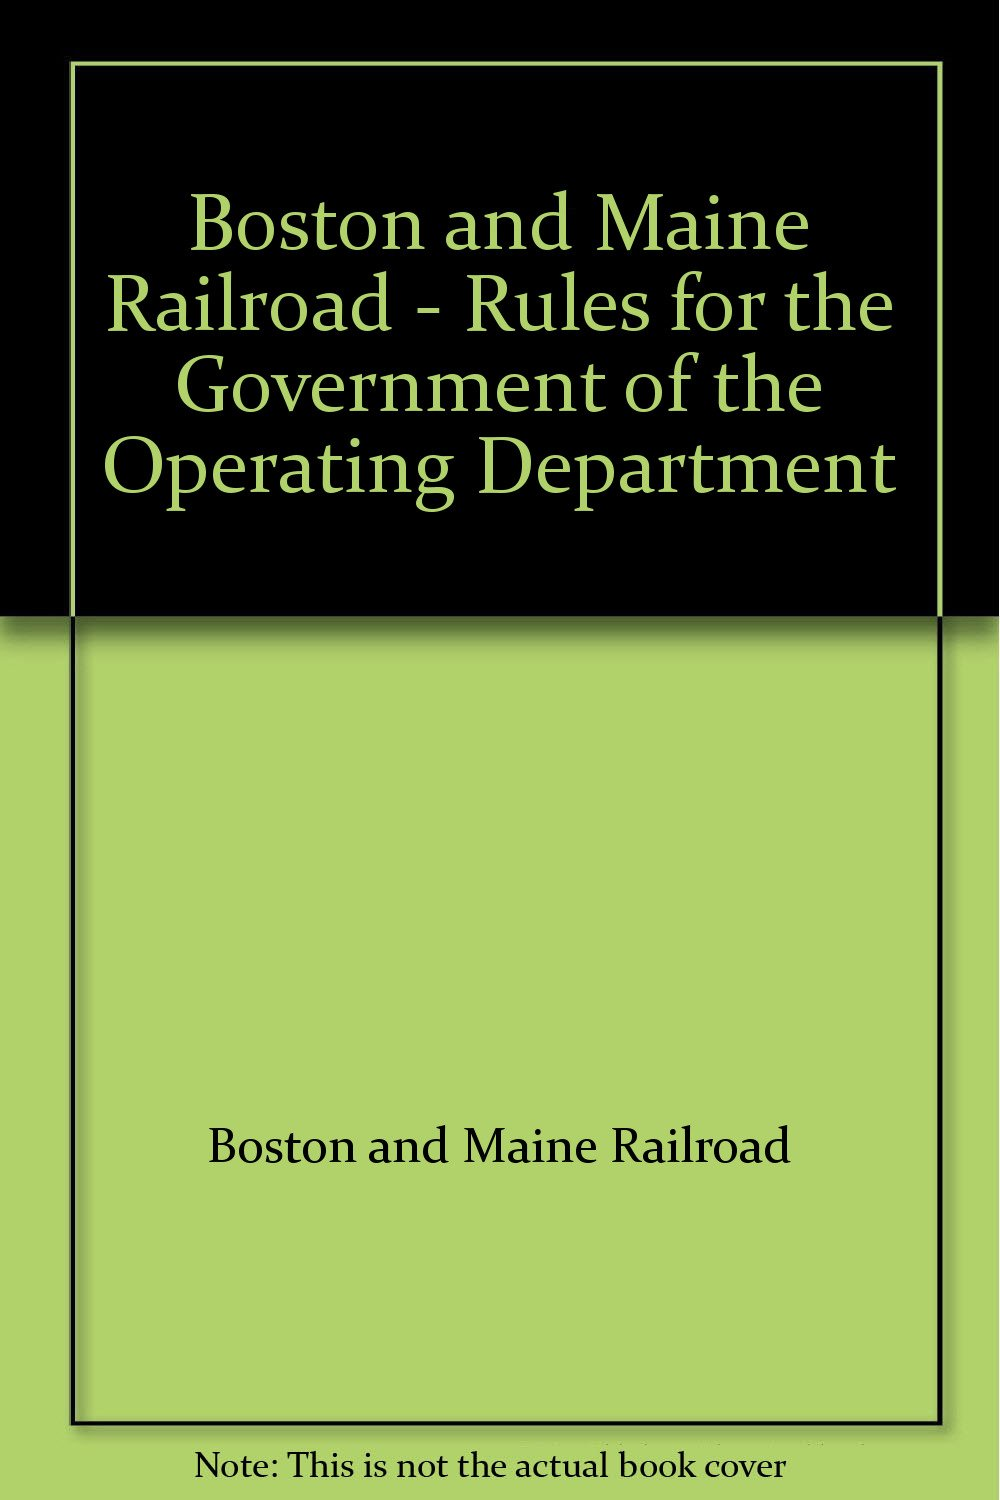 Boston and Maine Railroad - Rules for the Government of the